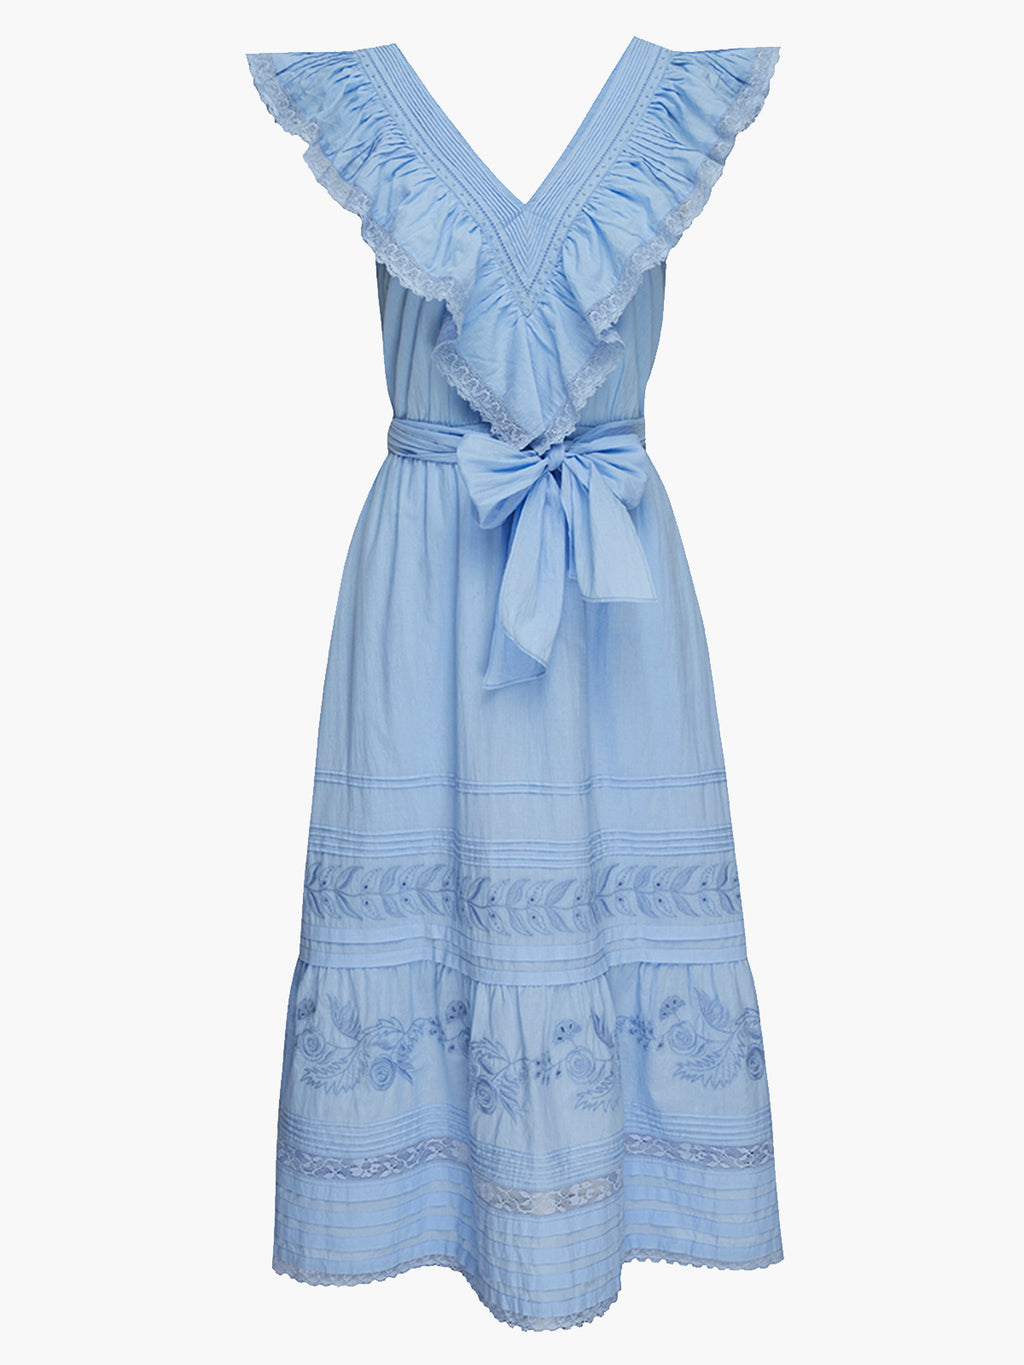 Wonderland Dress | Cerulean Blue